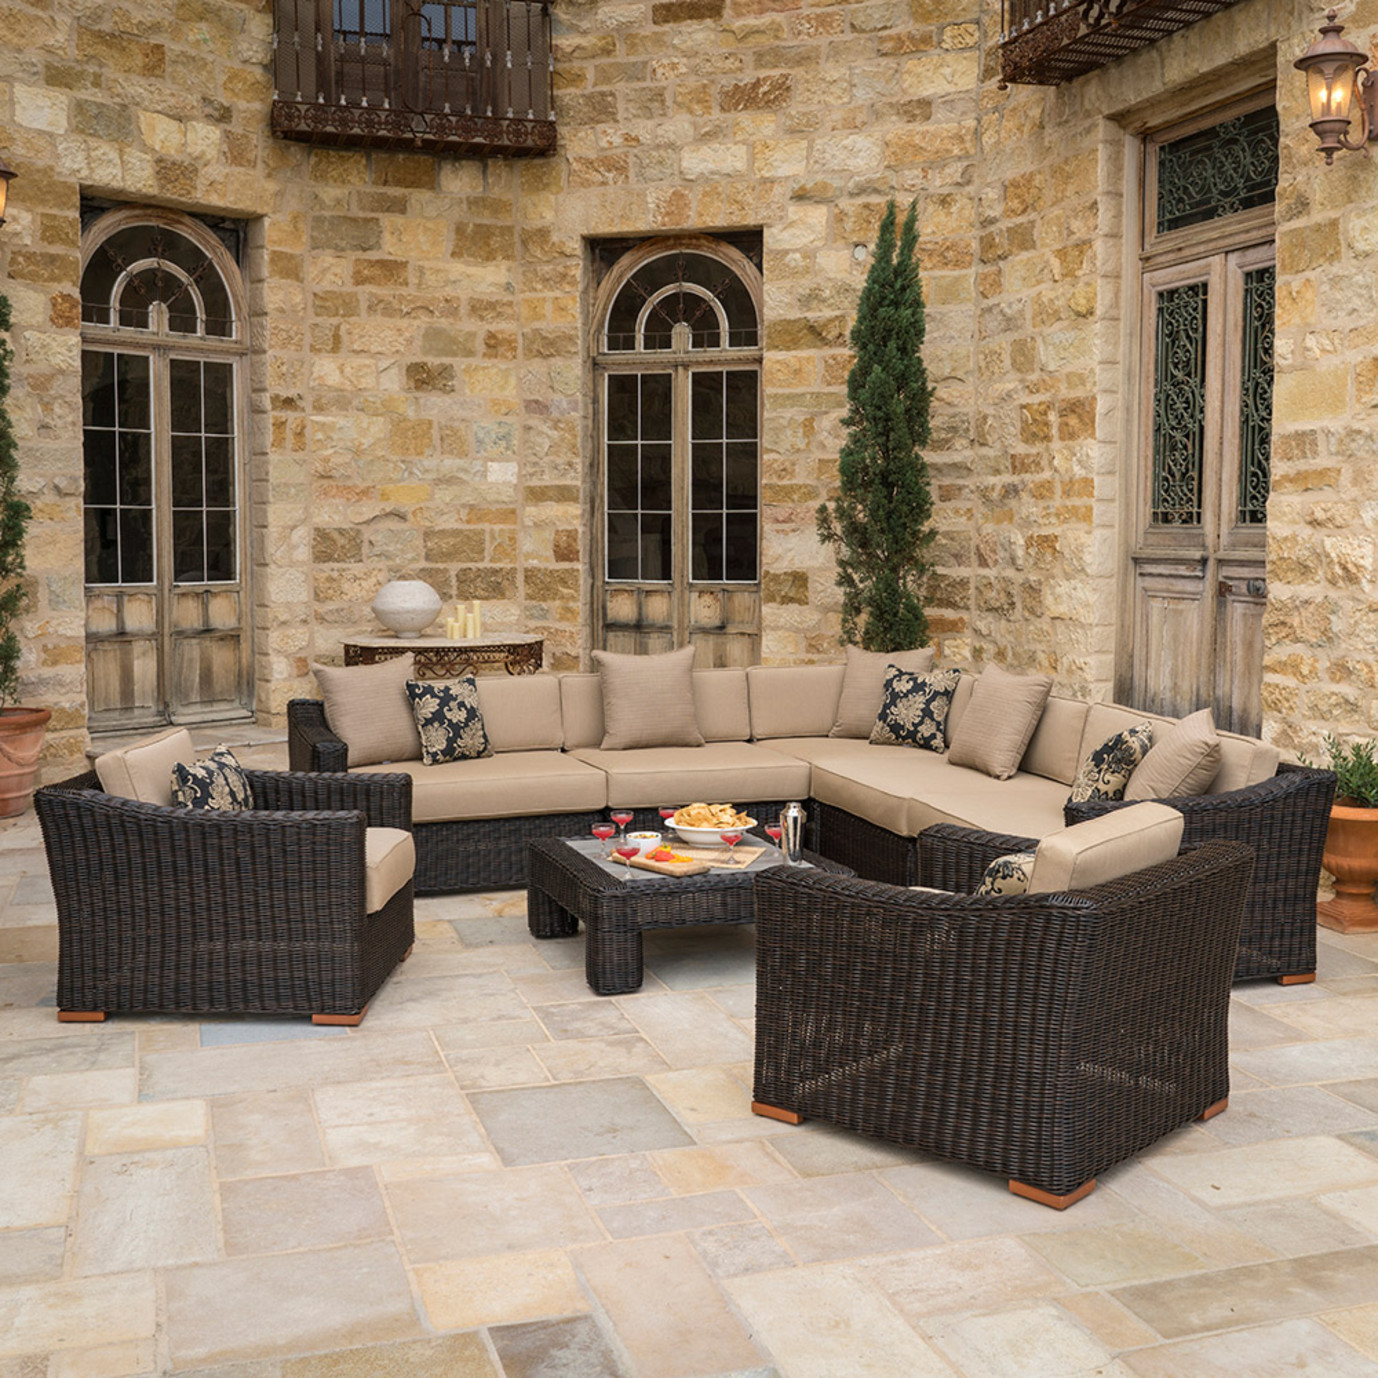 Resort™ 8pc Sectional and Club Set - Espresso/Heather Beige